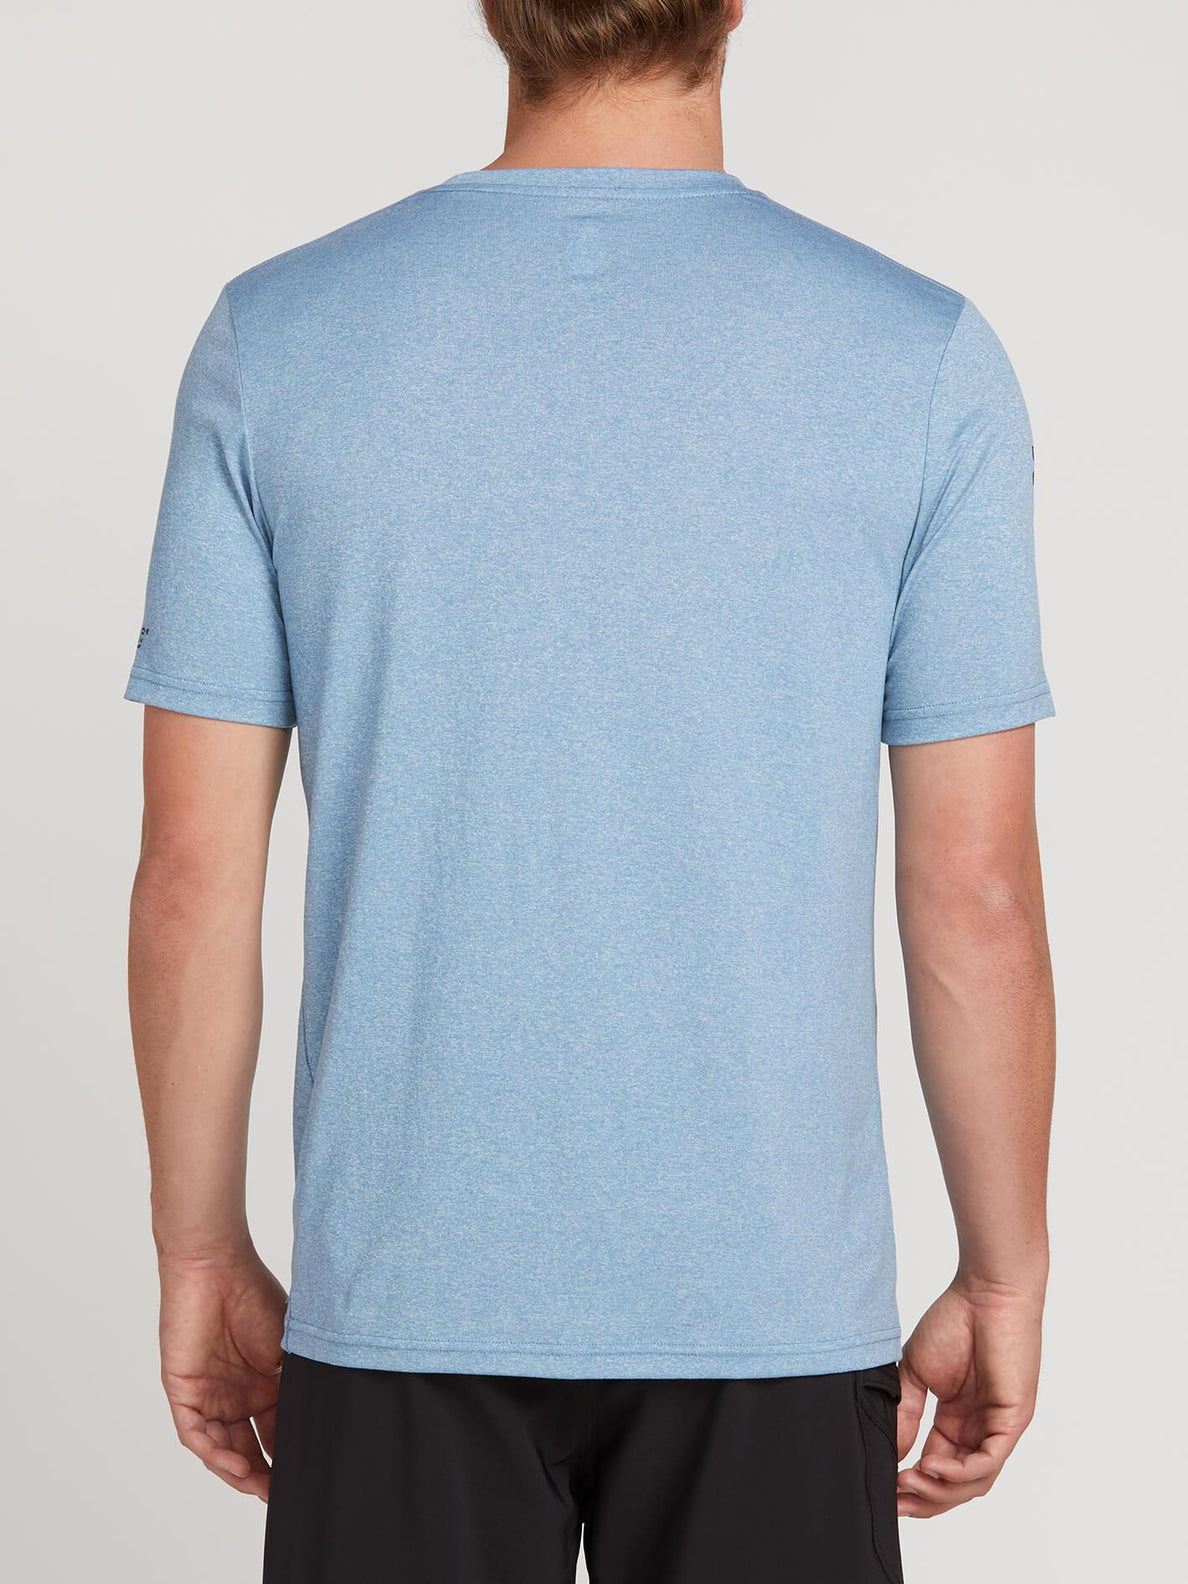 Lido Heather Short Sleeve Rashguard In Vintage Blue, Back View